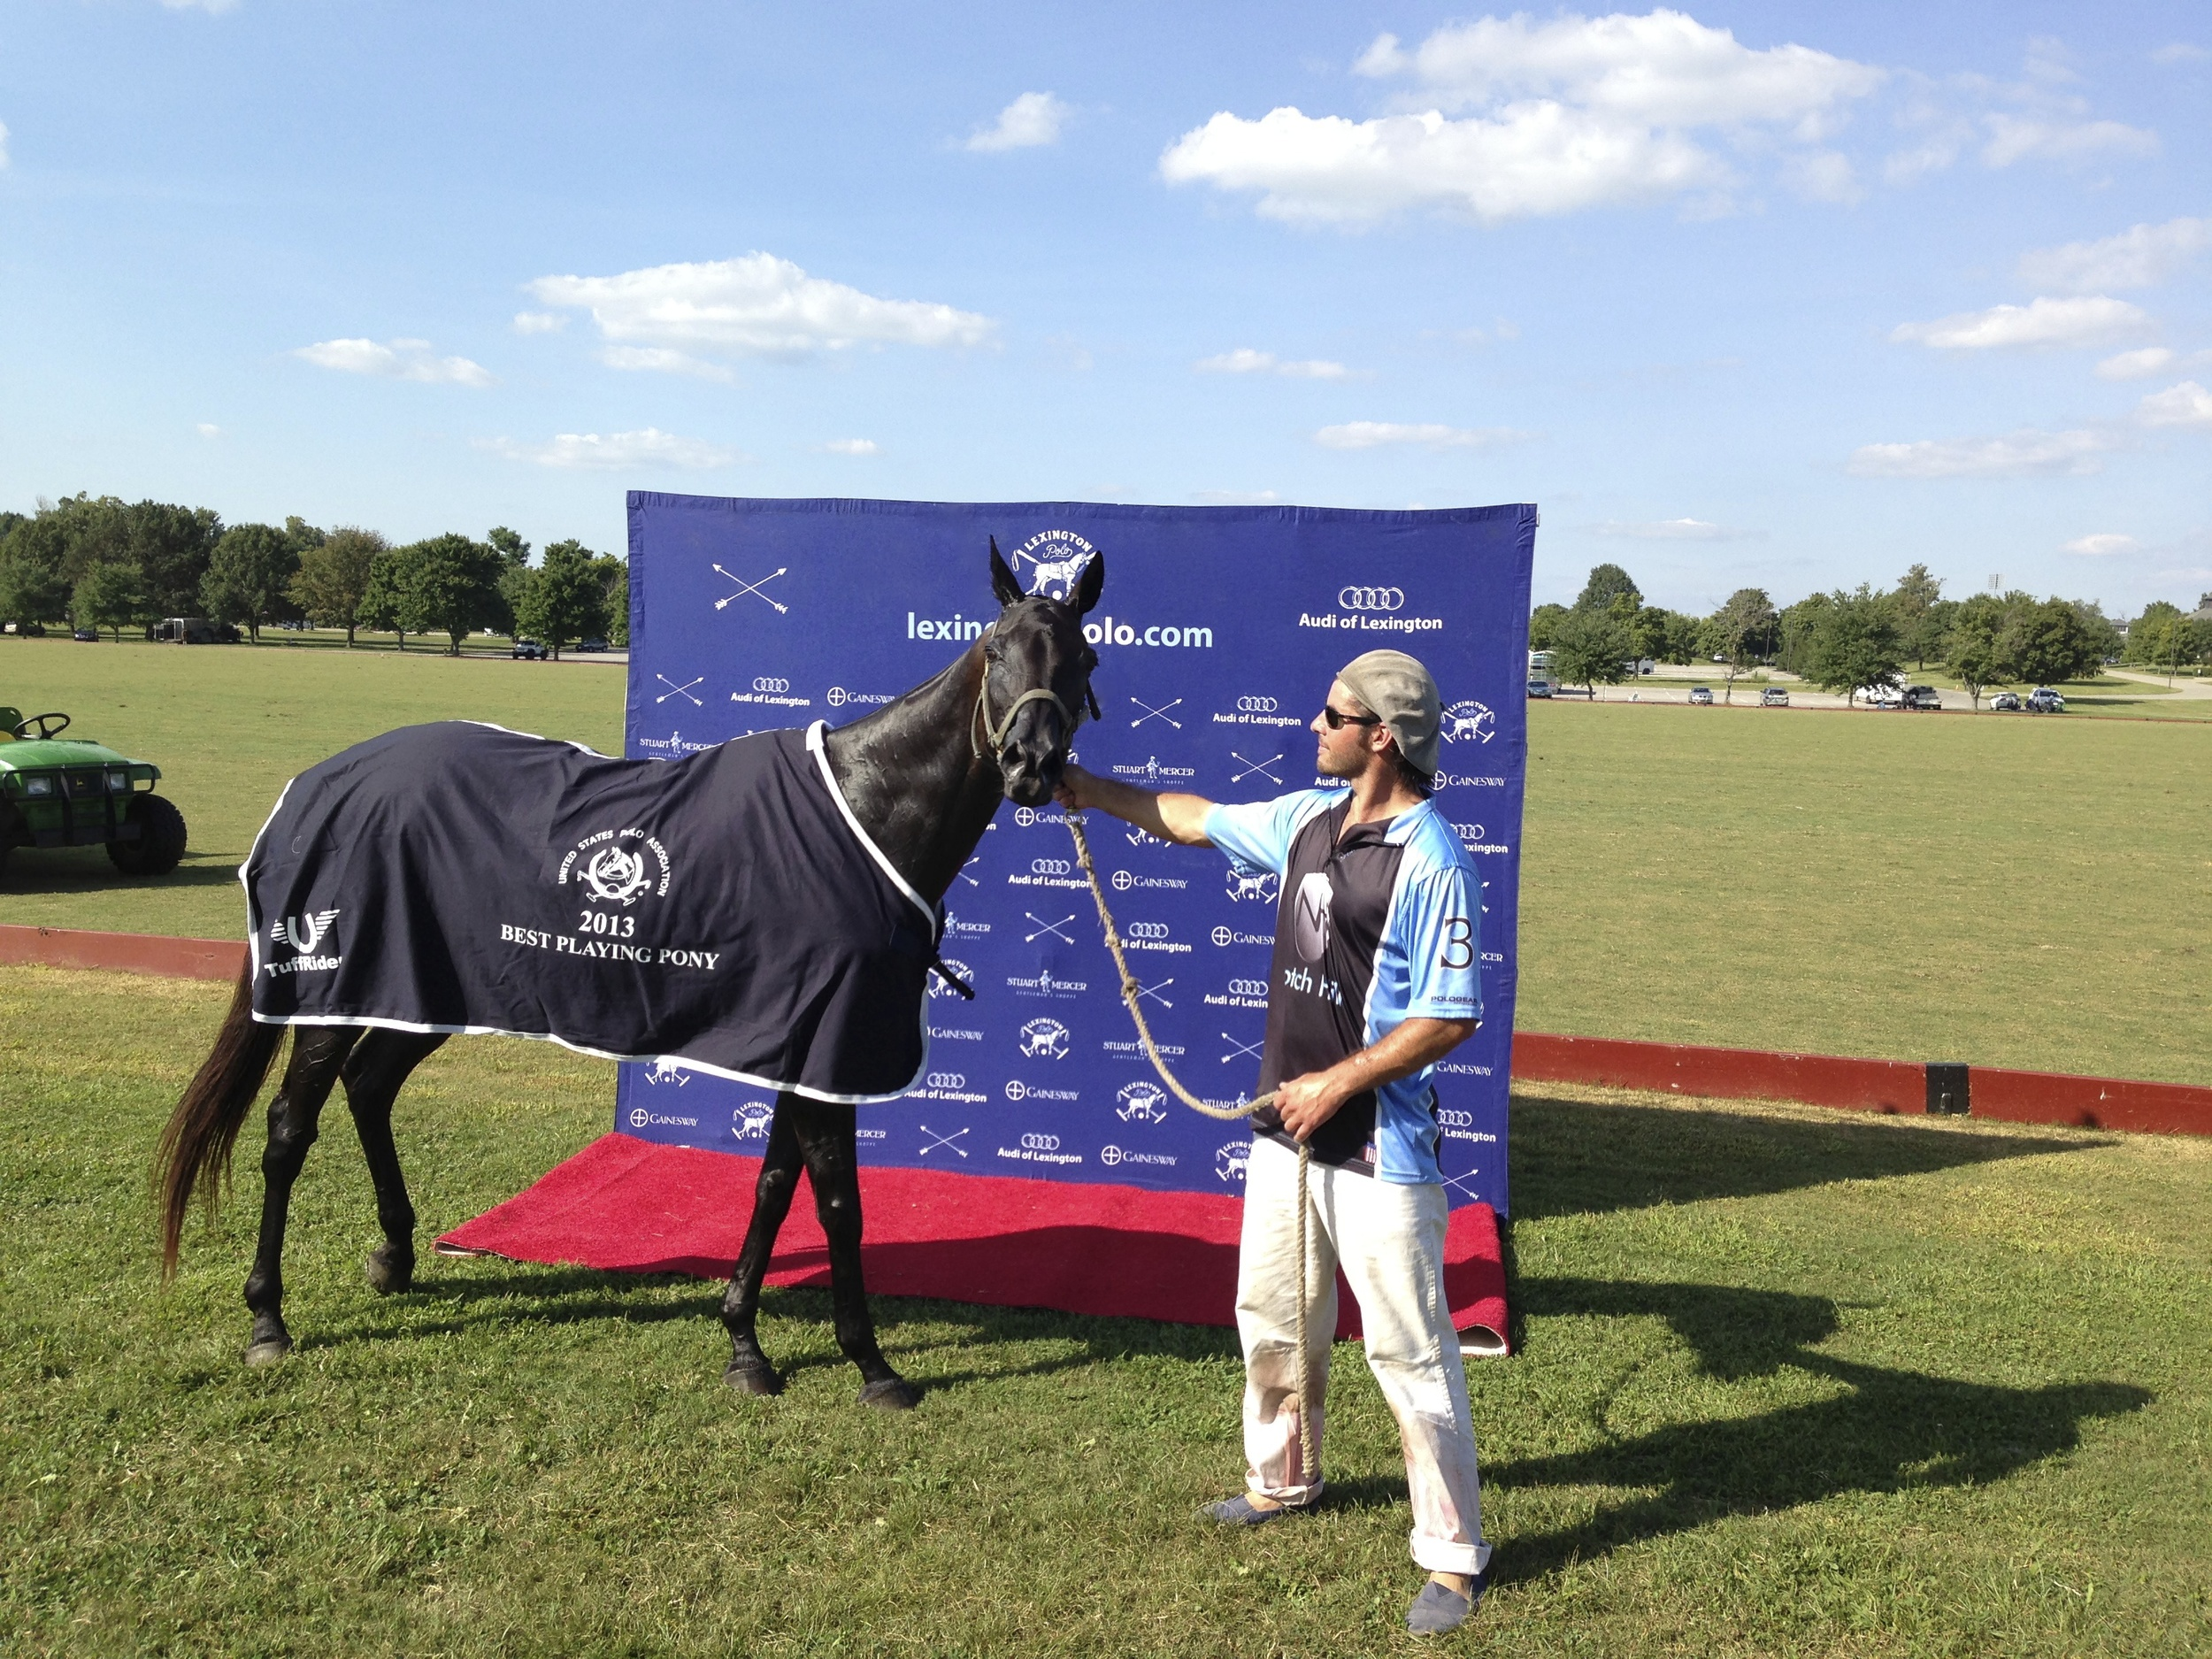 """National Amateur Cup - Best playing pony """"Blue"""" owned and played by Luis Ansola"""